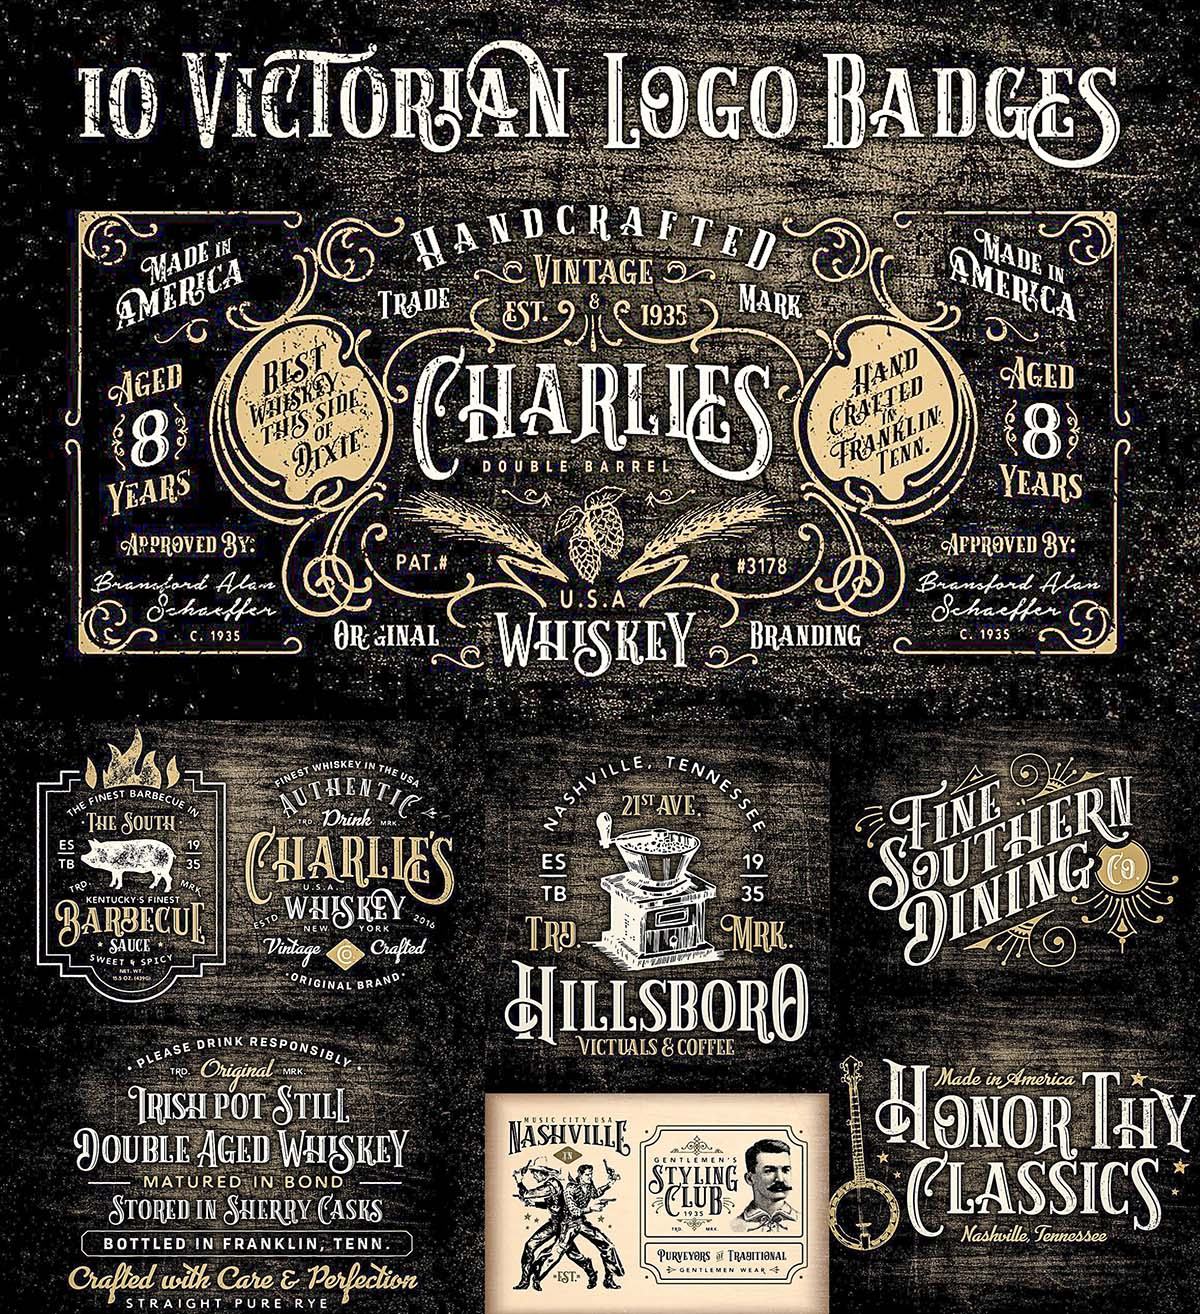 Vintage victorian badges collection | Free download